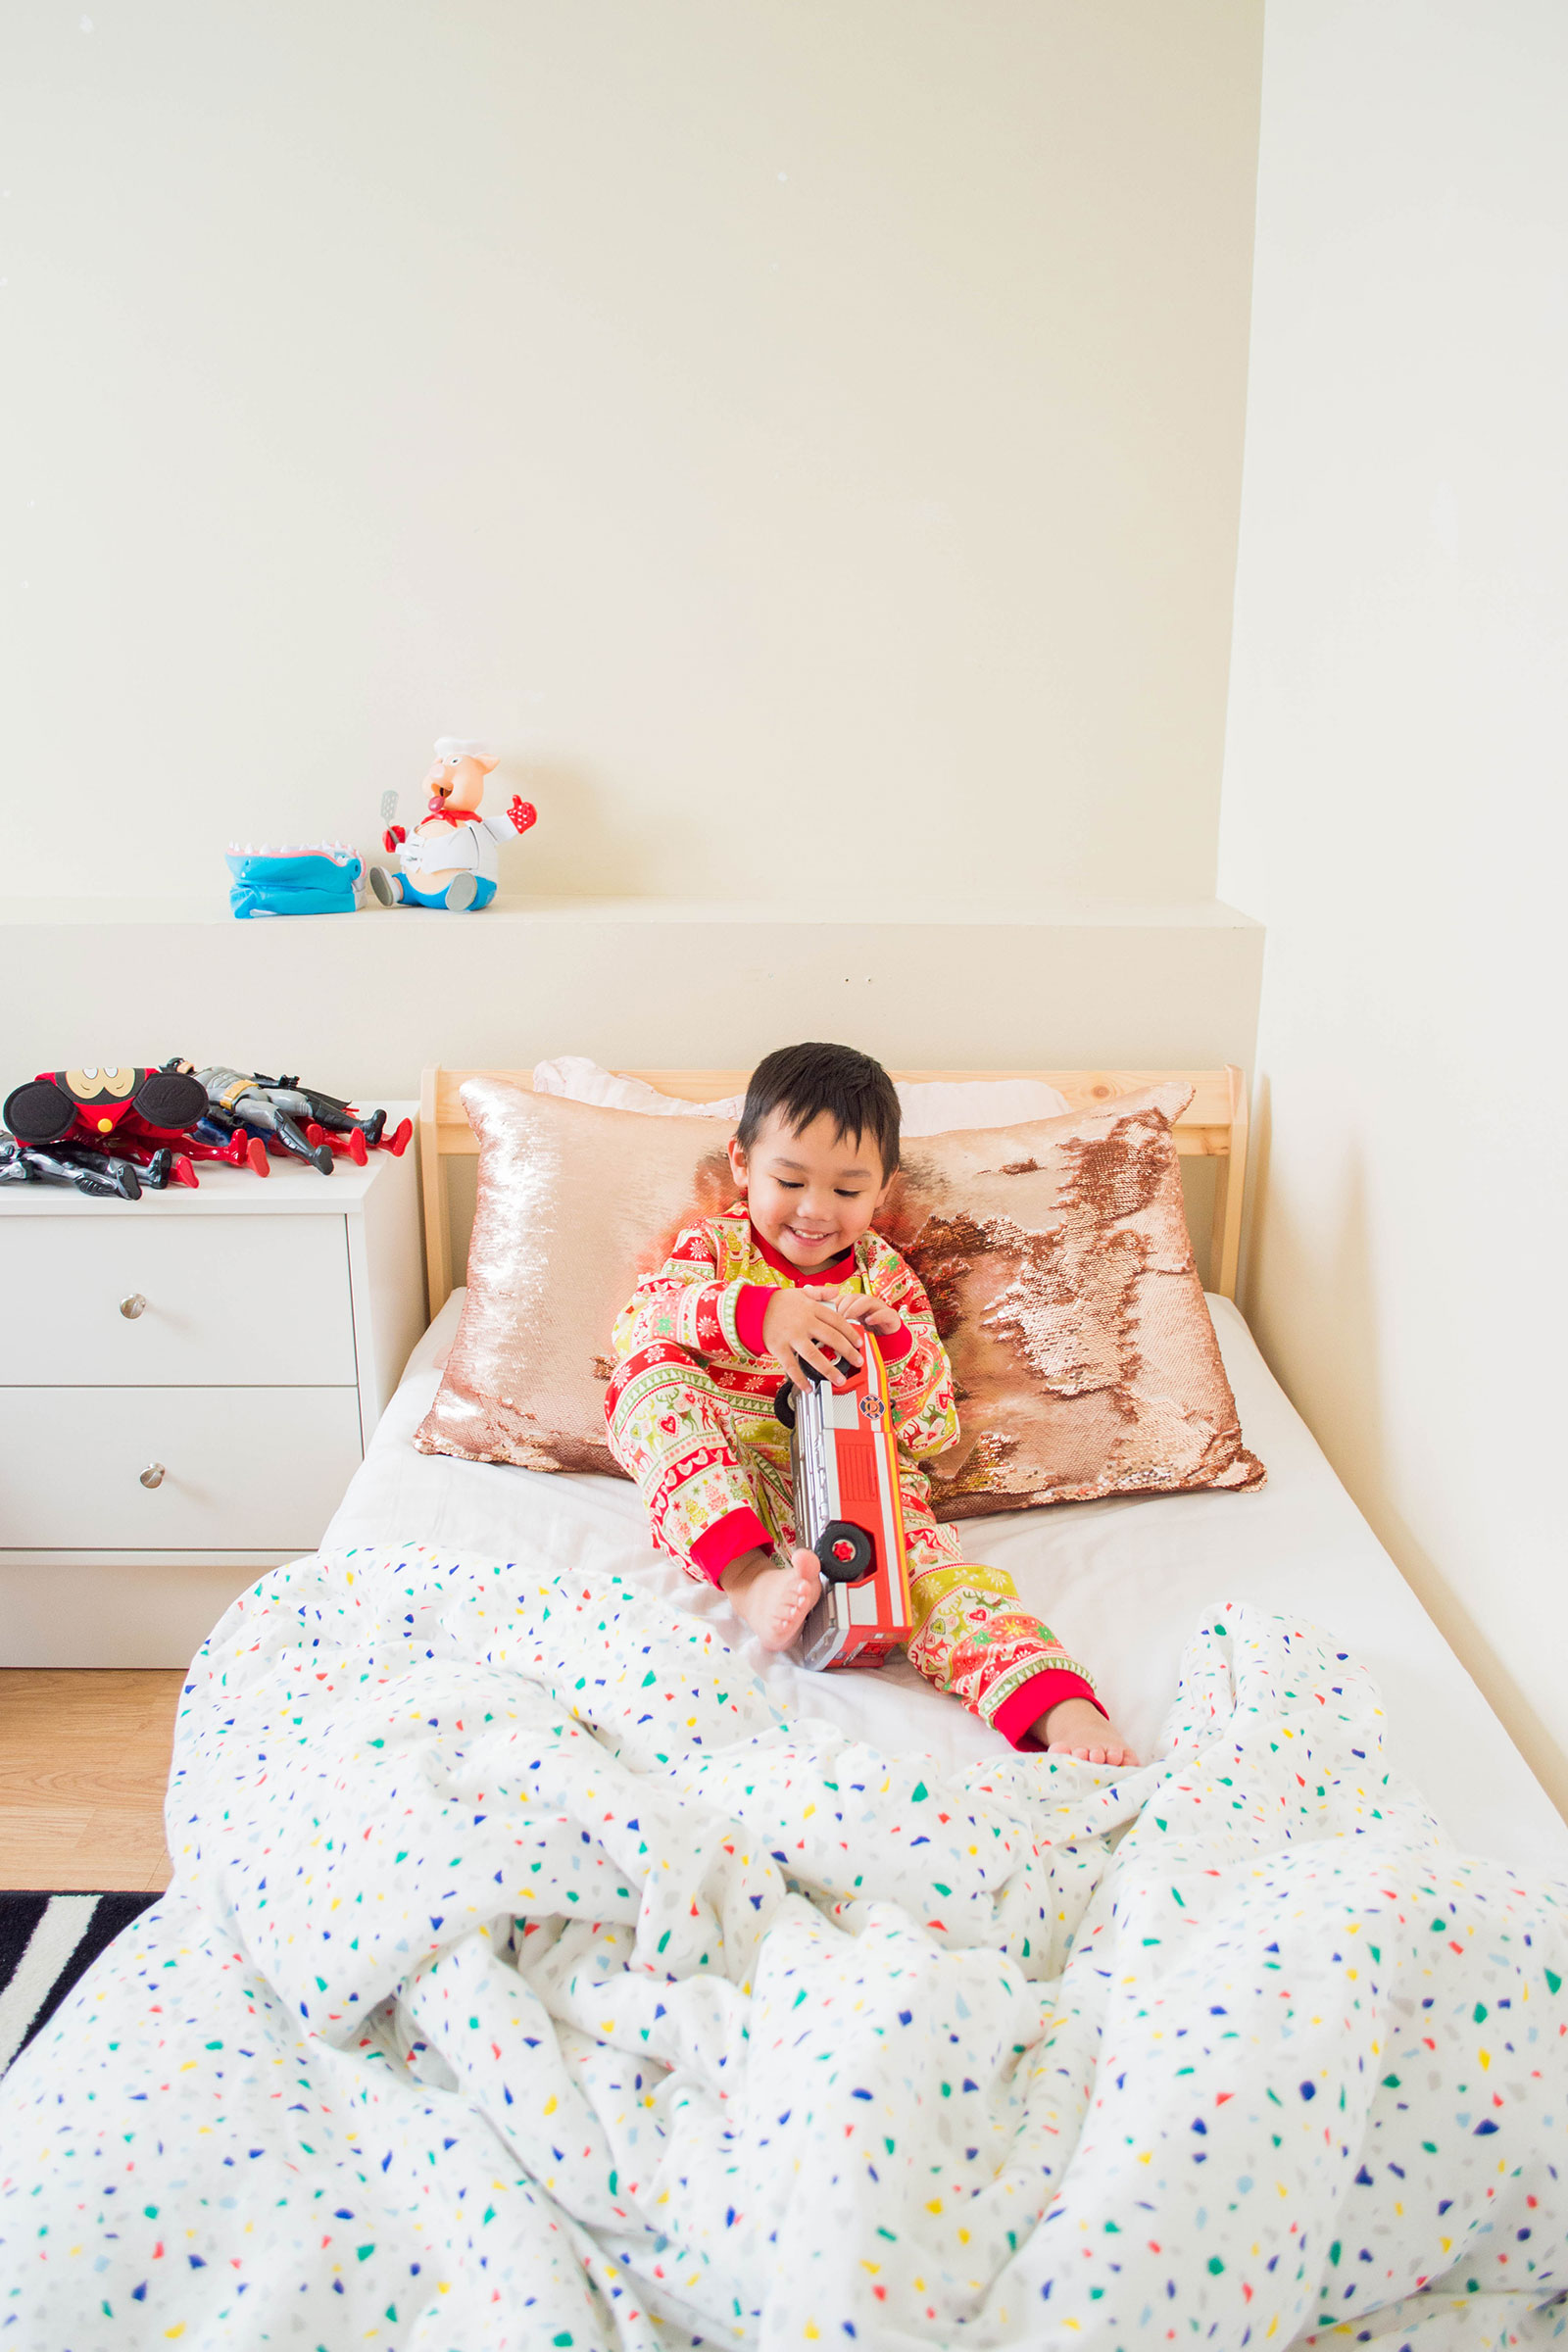 Gift Guide: How to Create the Cutest Baby Outfits